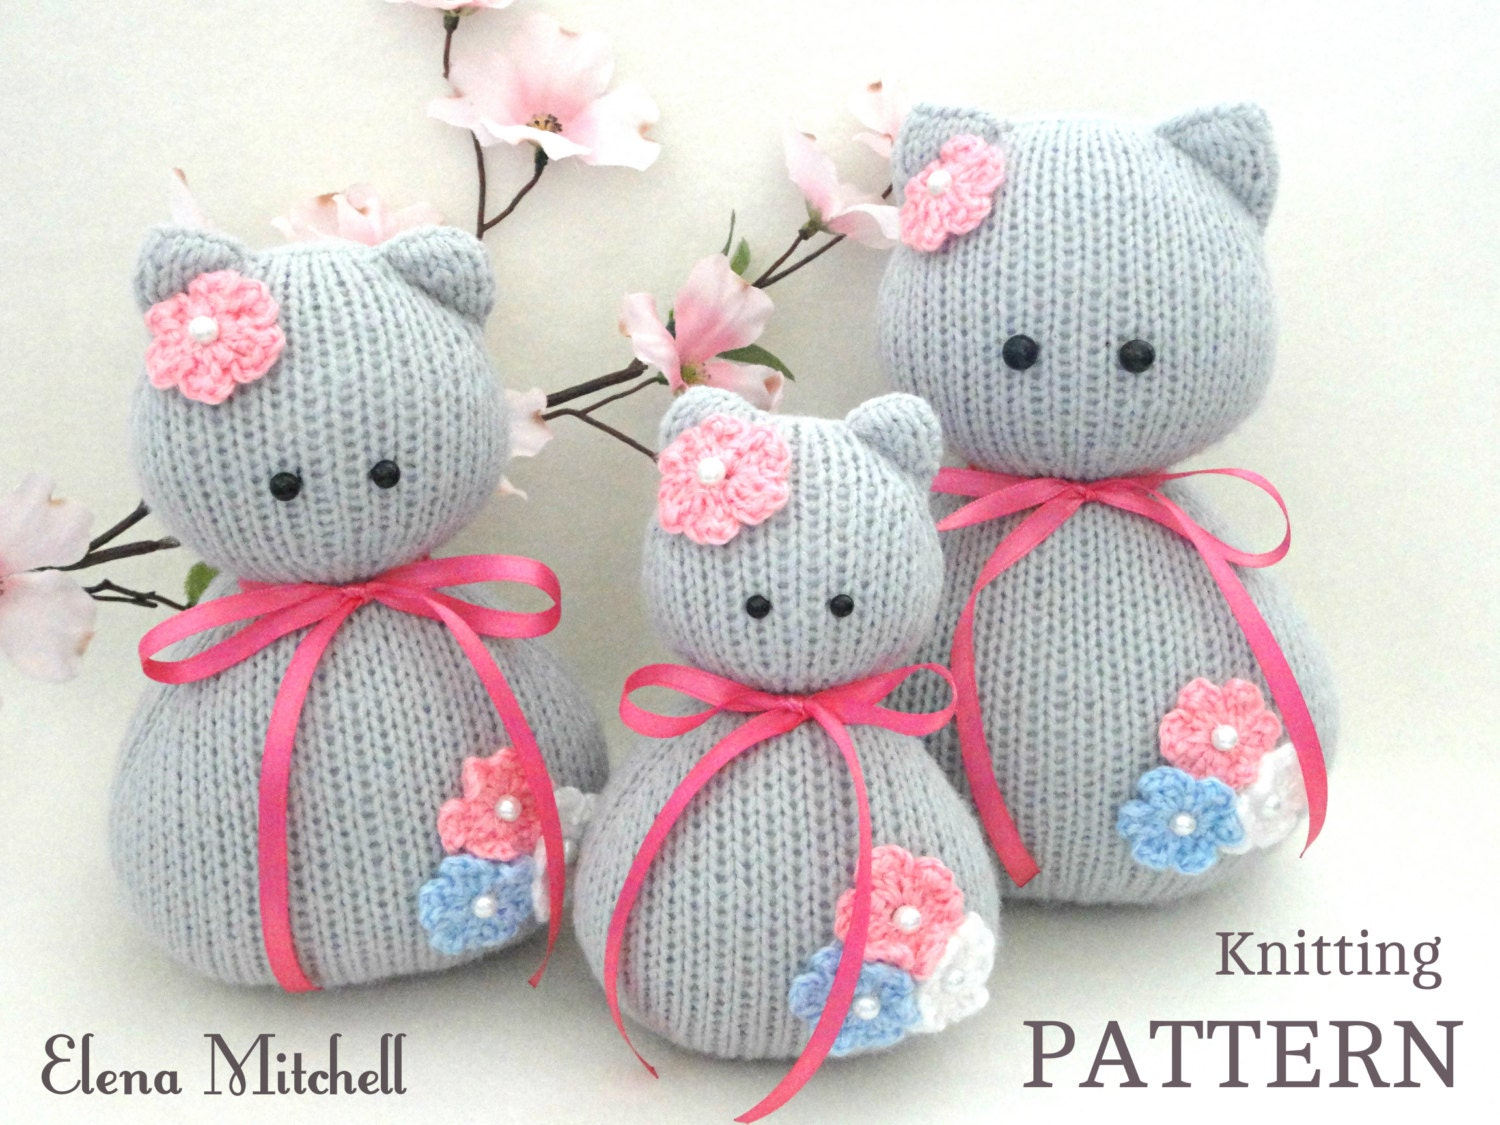 Free Toy Knitting Patterns Only : Knitting PATTERN Animal Knit Pattern Cat Animal Patterns